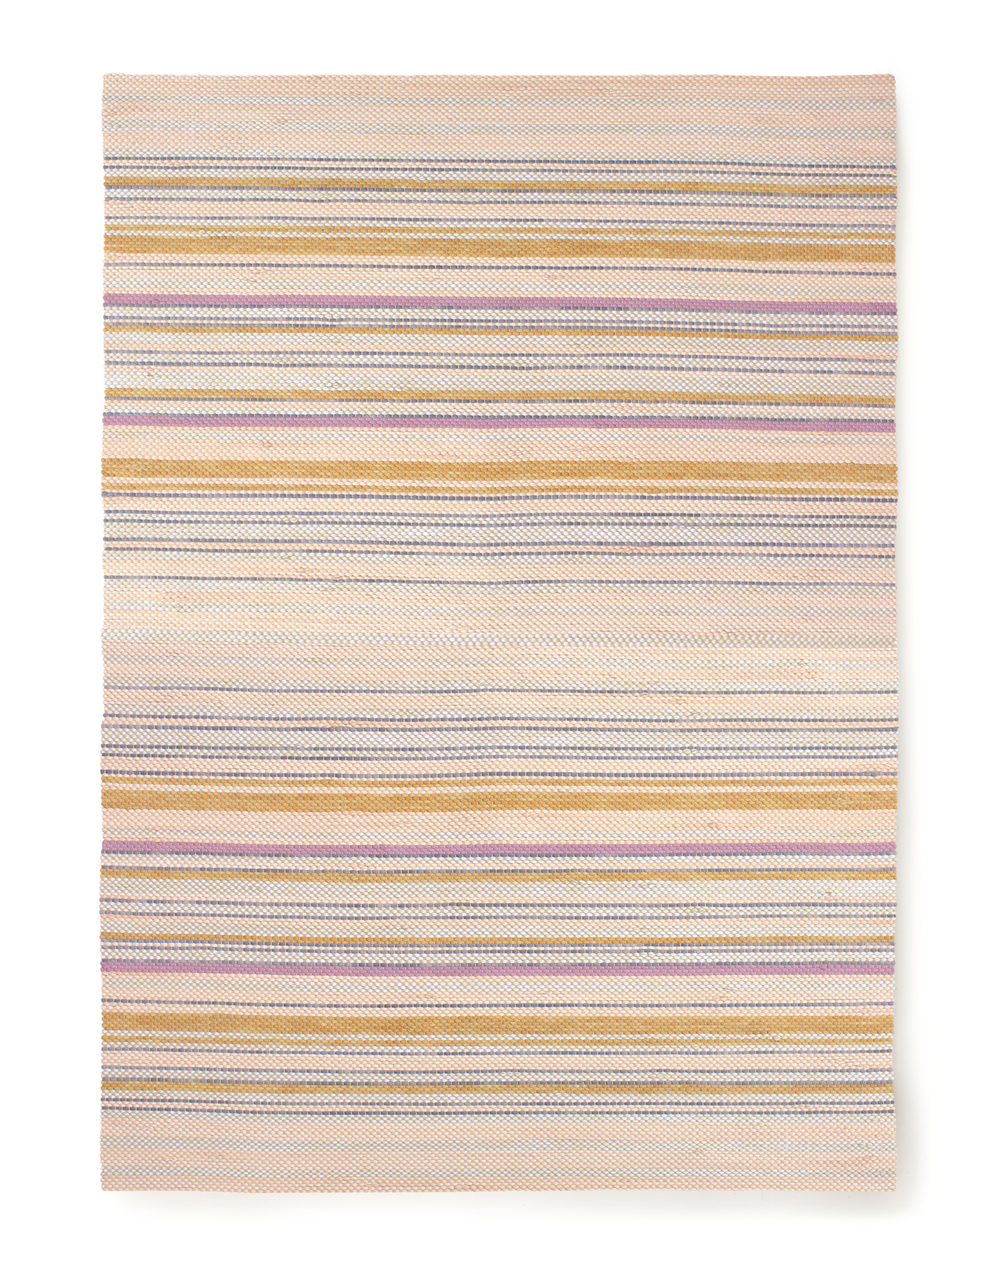 AVO_Woven-Leather-Rug_Selvage-Edge_Canyon-Stripe.png